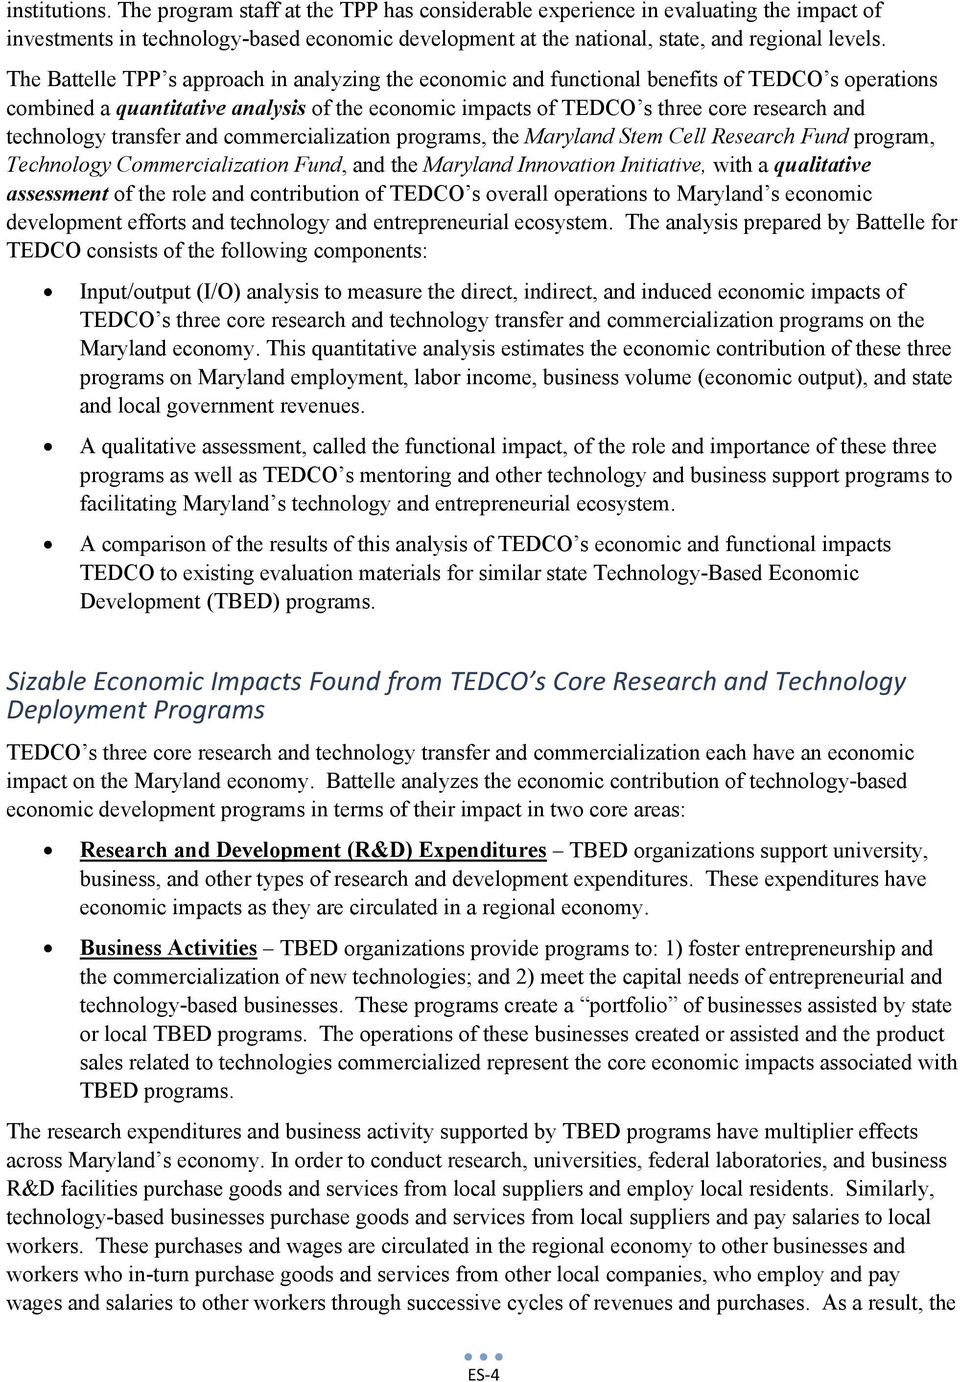 technology transfer and commercialization programs, the Maryland Stem Cell Research Fund program, Technology Commercialization Fund, and the Maryland Innovation Initiative, with a qualitative